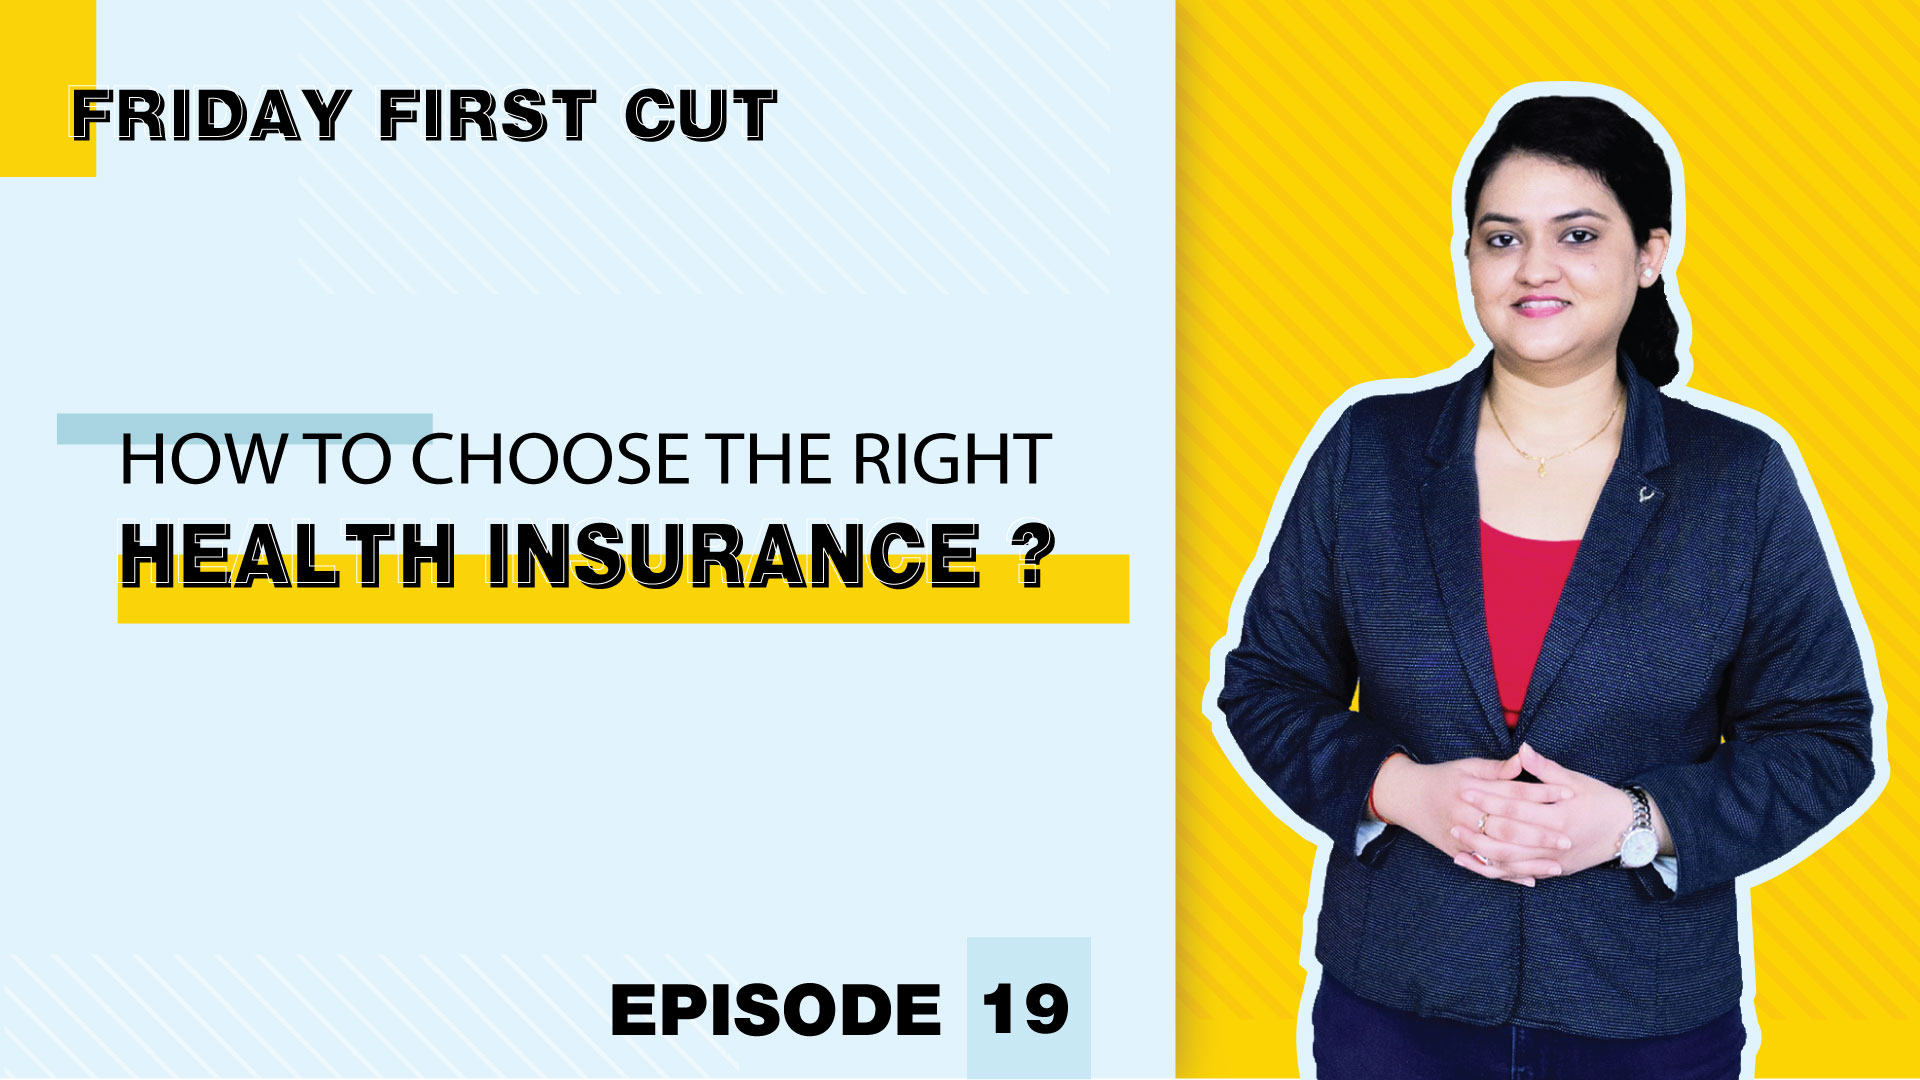 Types of health insurance covers